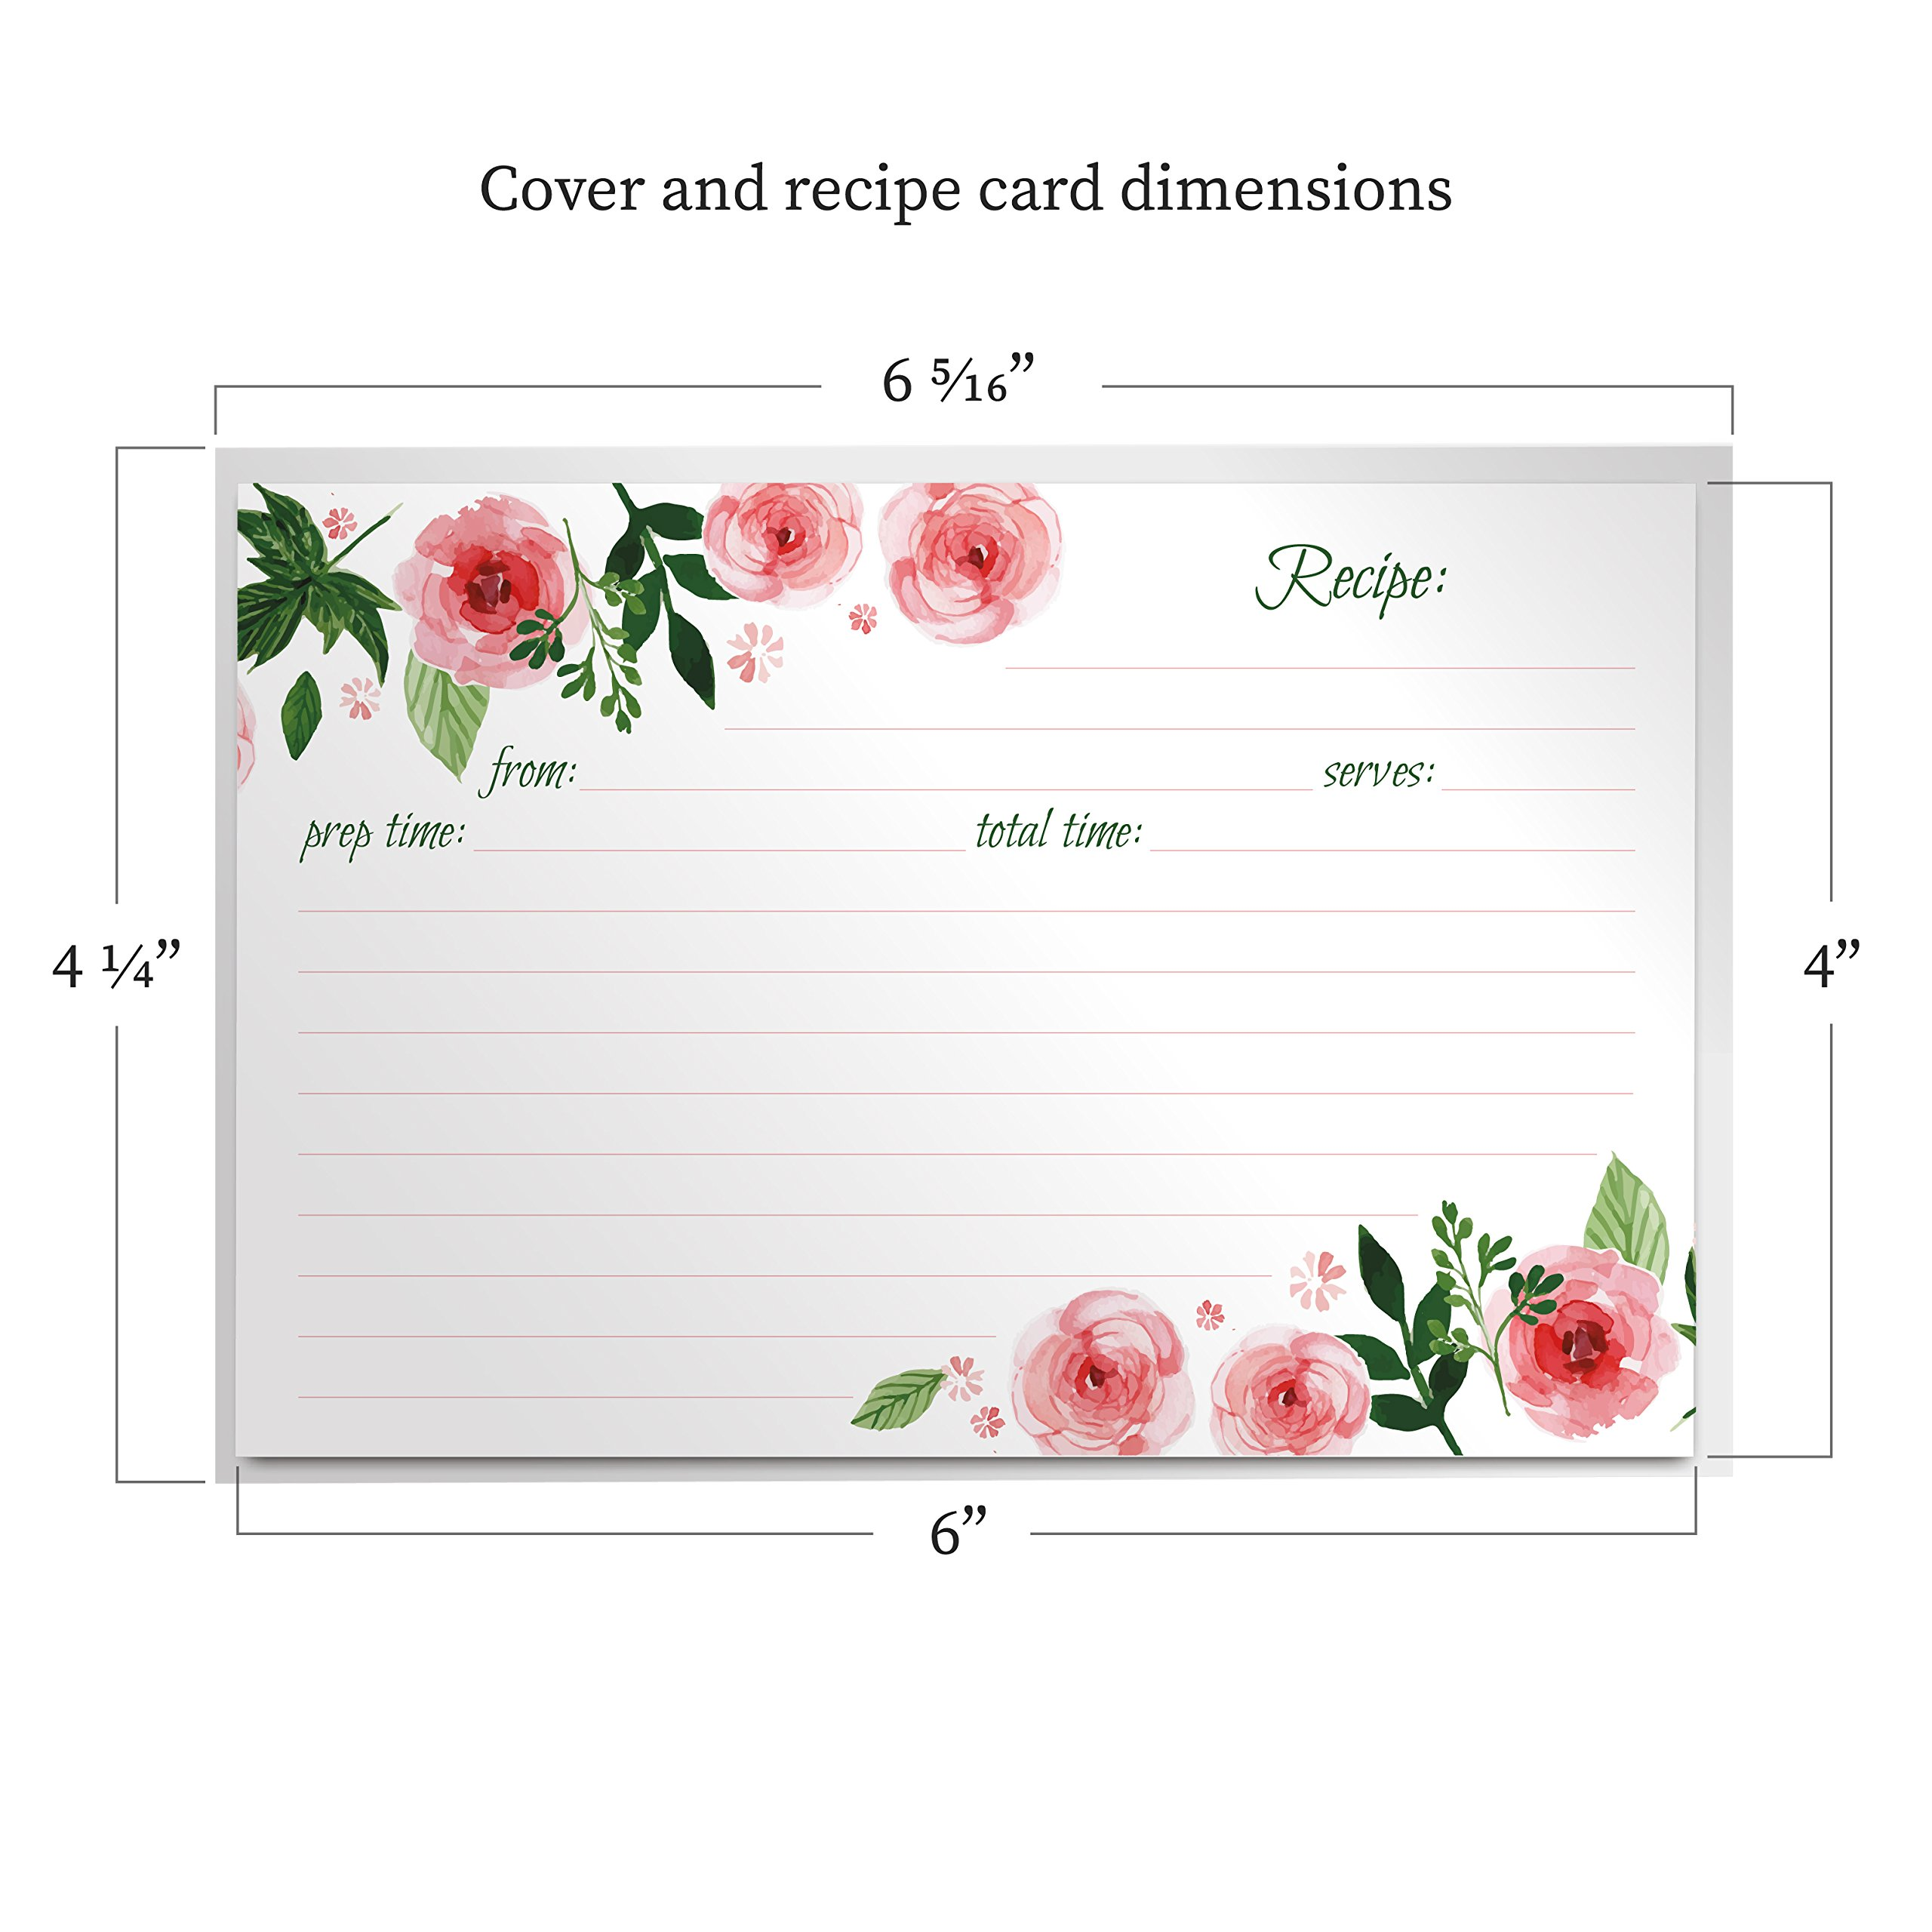 Jot & Mark 4x6 Recipe Card Protectors | Protect Your Recipes from Kitchen Messes | 100 Crystal Clear Covers Per Pack by Jot & Mark